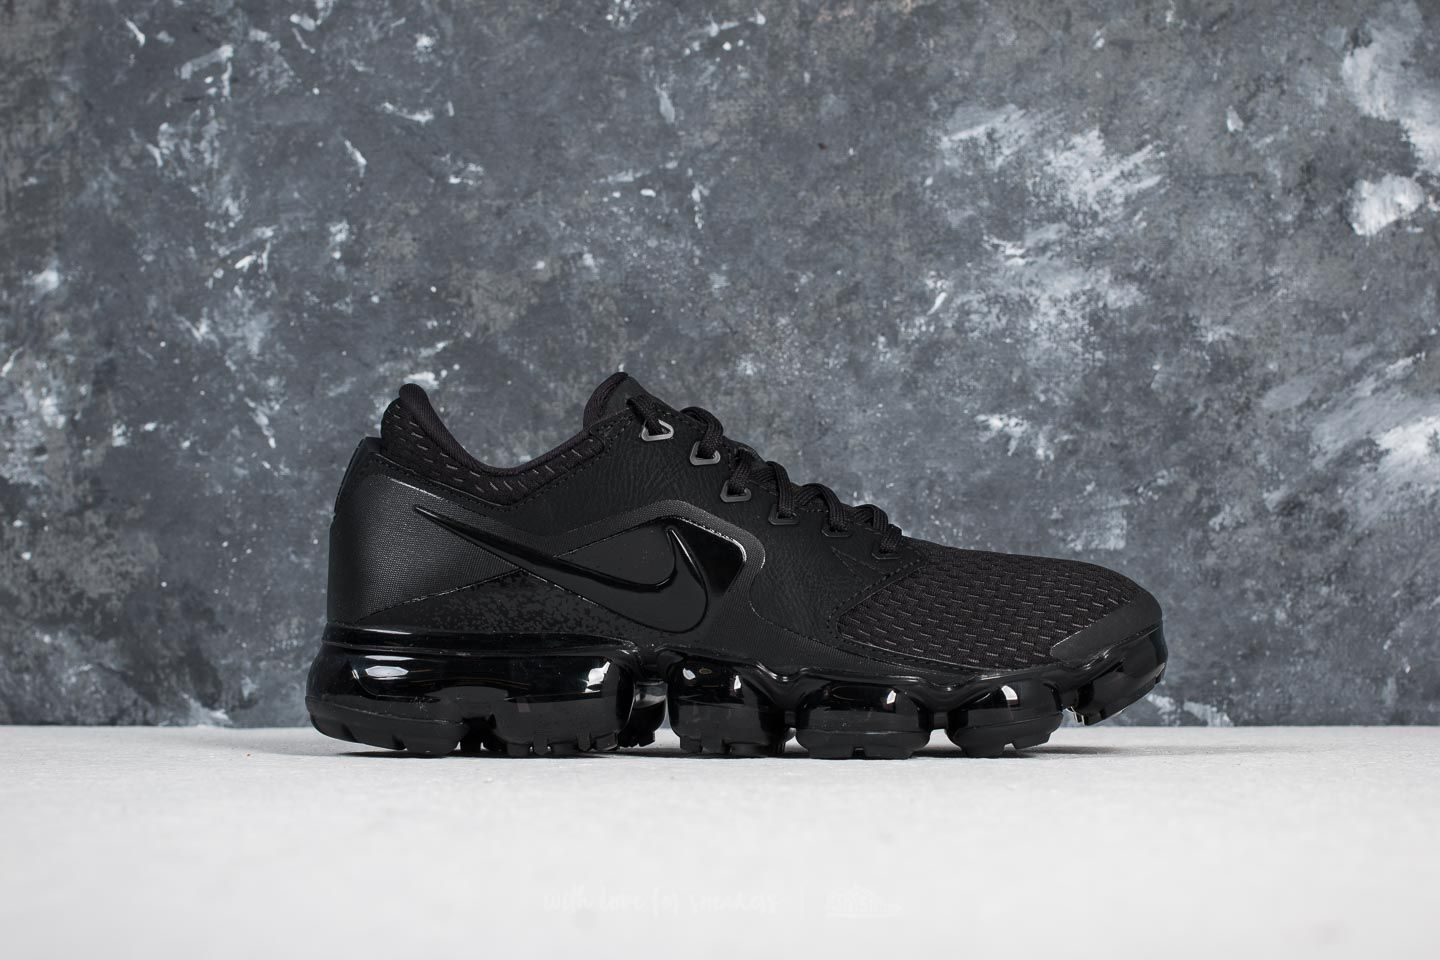 28d0cce3ff721 Nike Air Vapormax Wmns Black  Black-Black-Anthracite at a great price 134